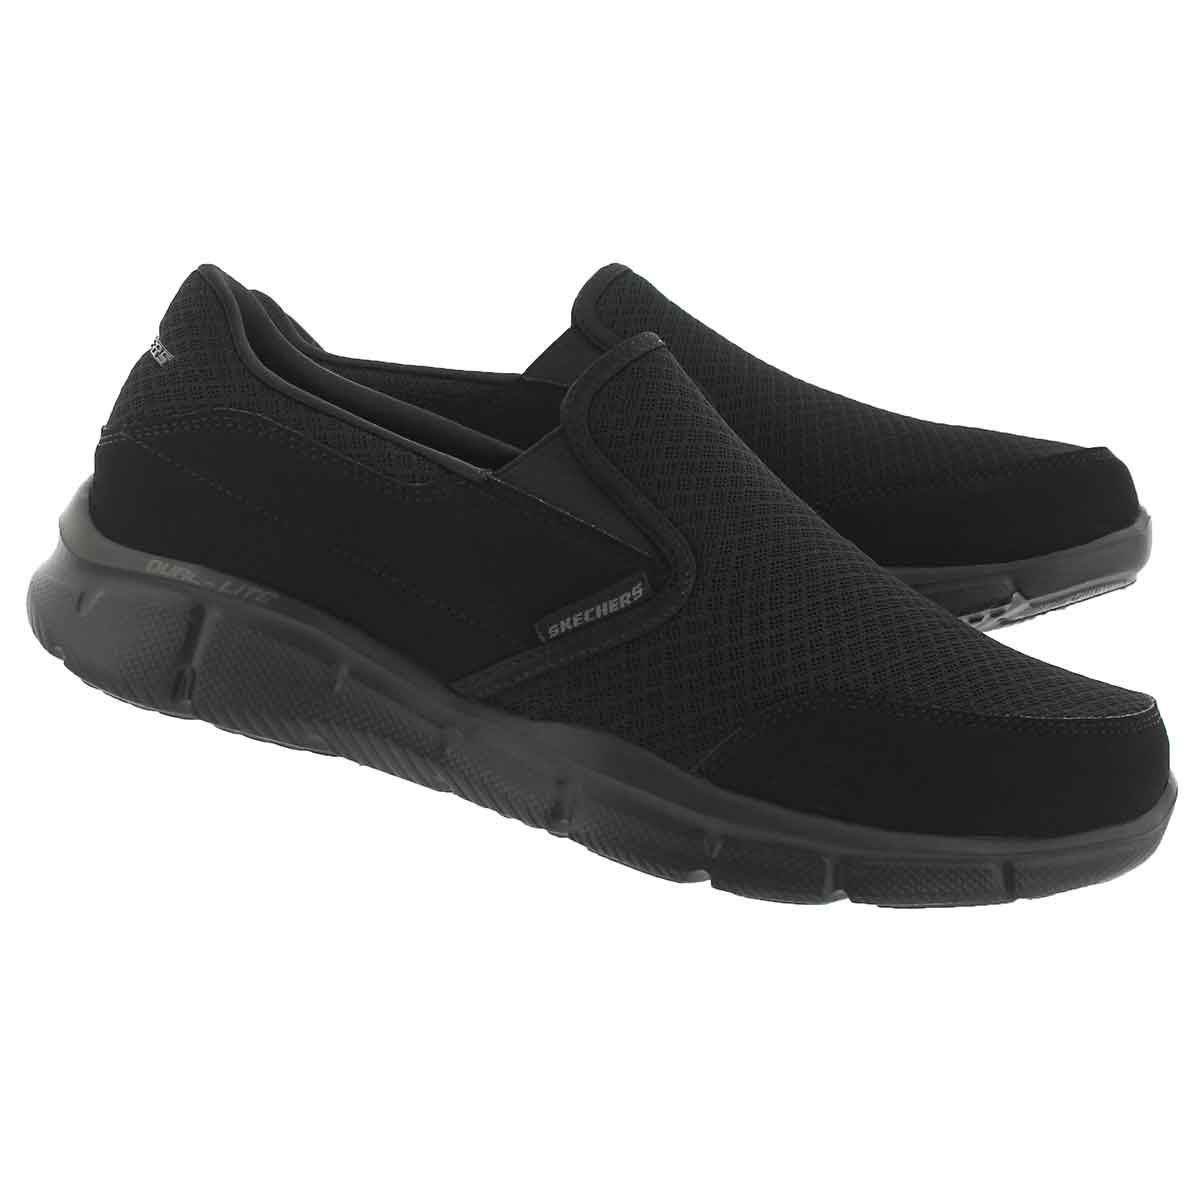 Mns Persistent black slip on sneaker